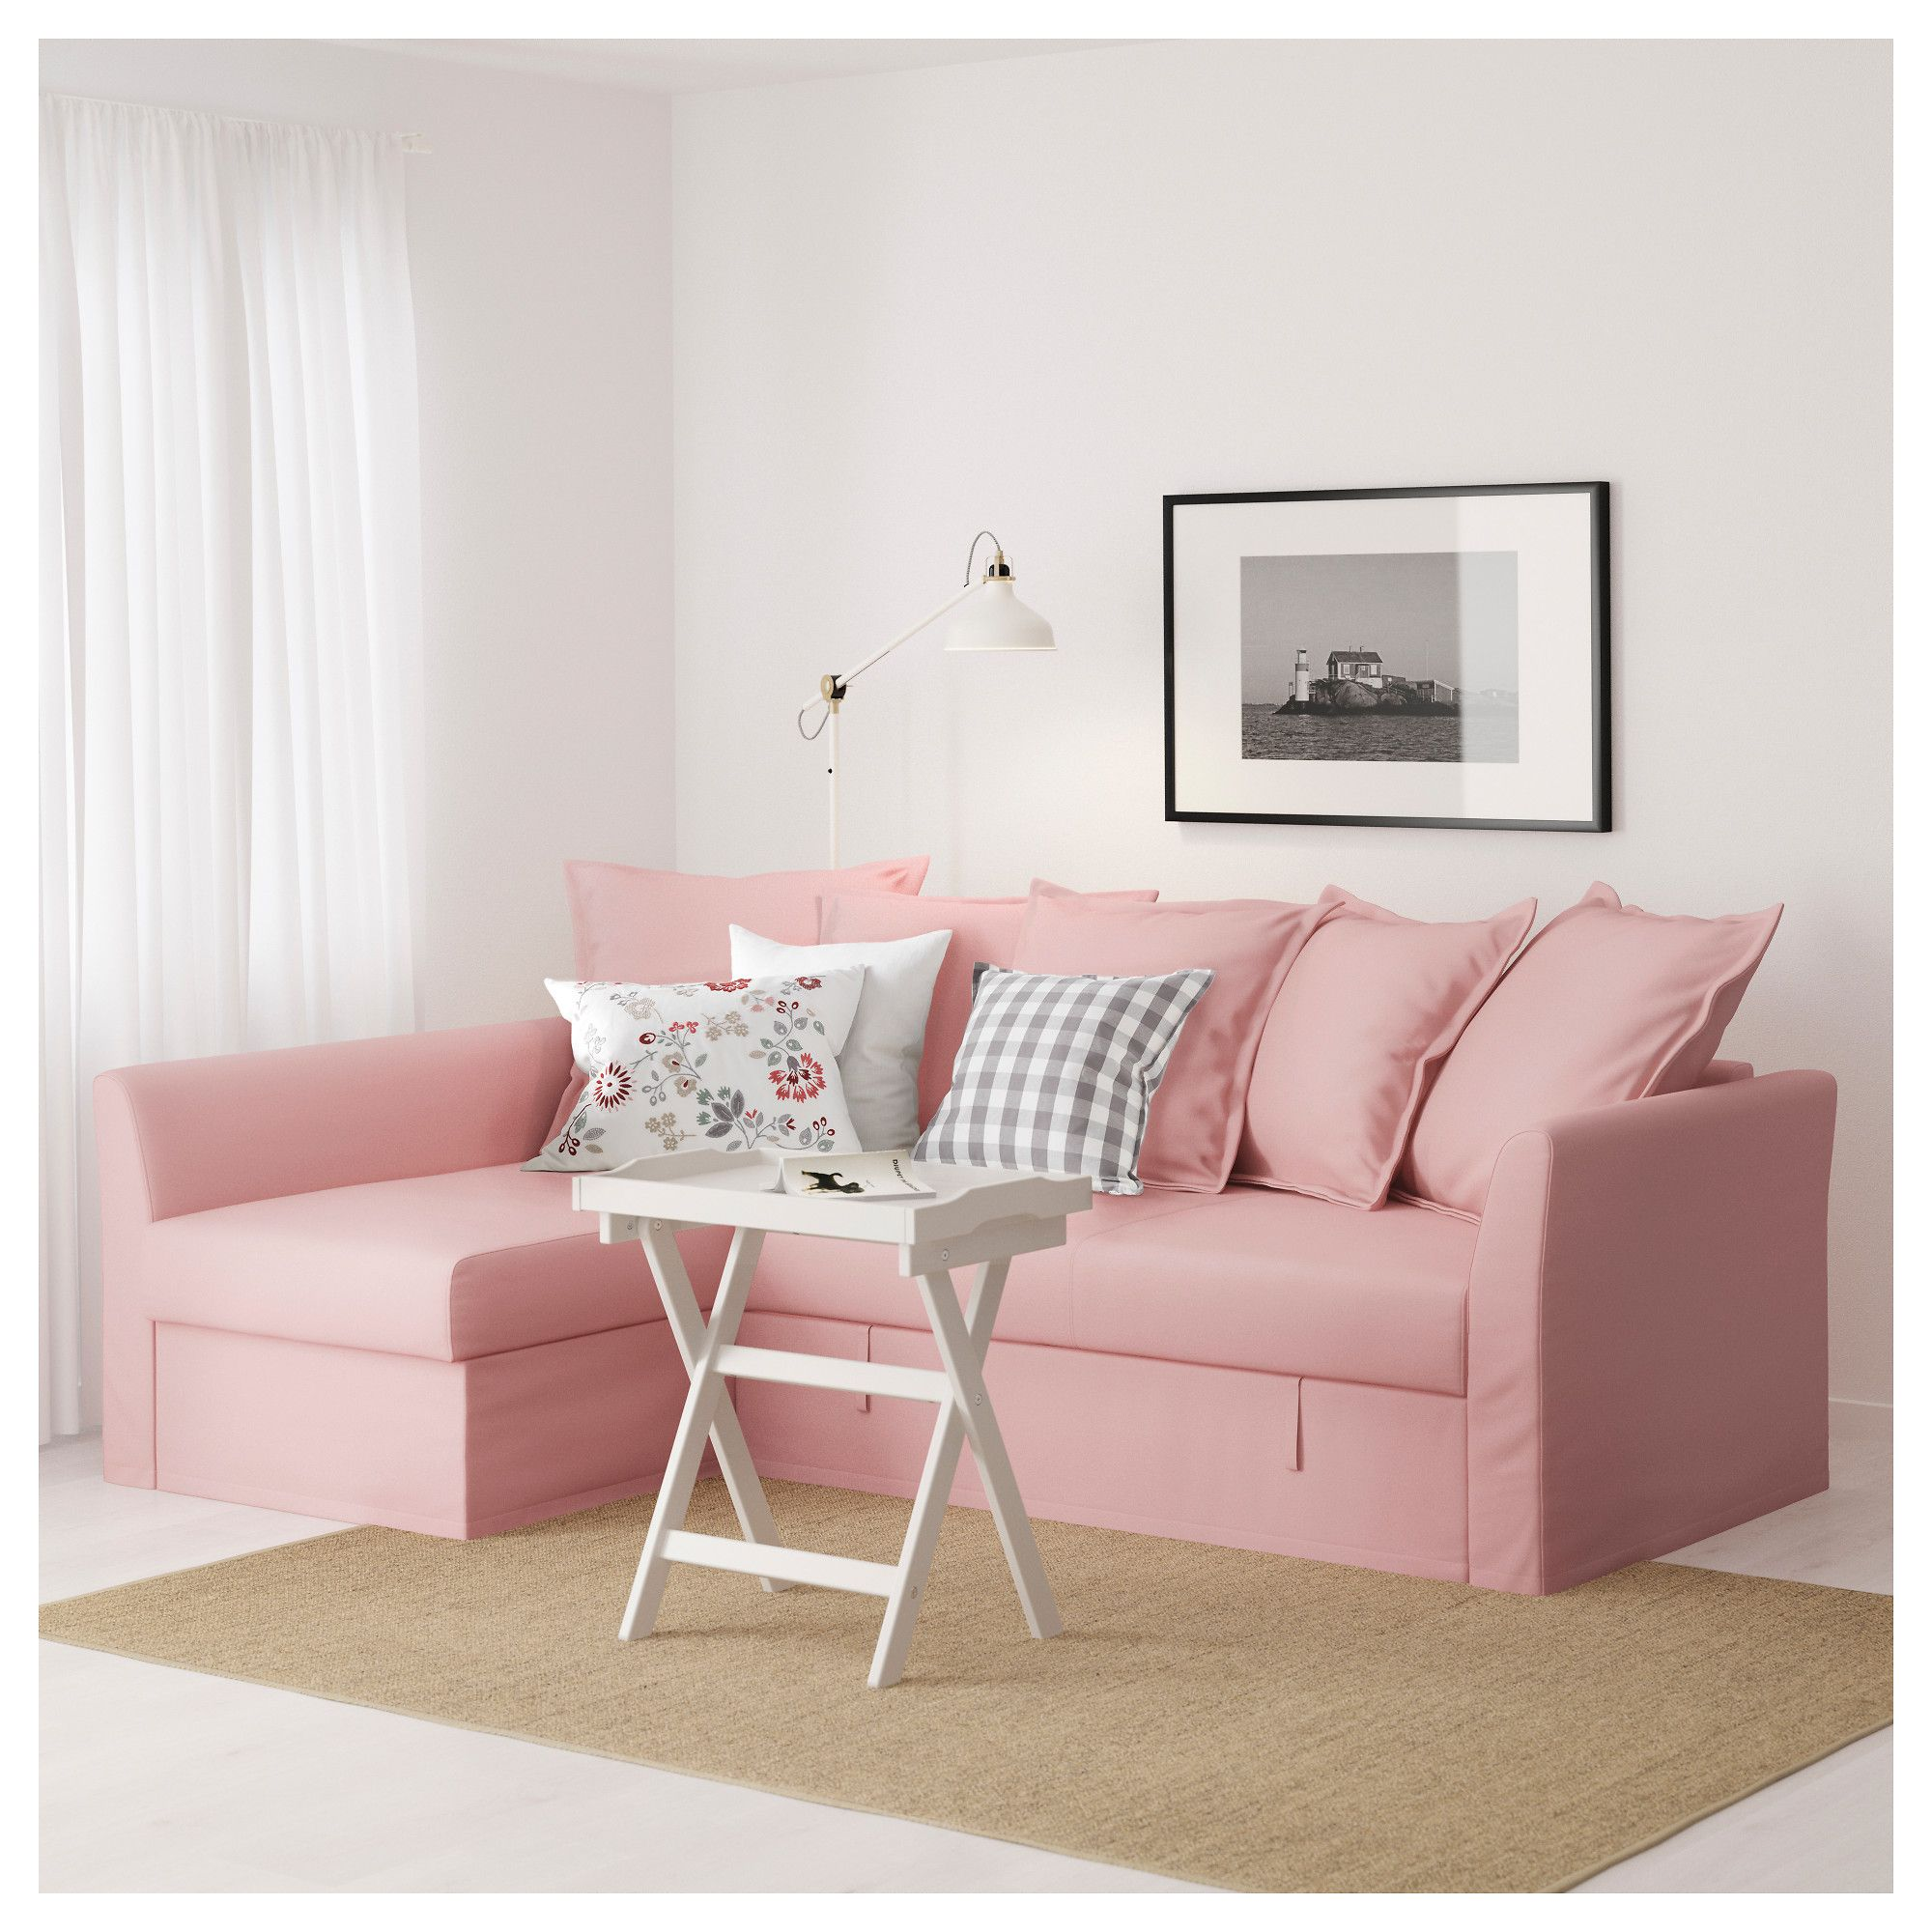 Light Pink Sofa Bed Comprar Barato On Line Ikea Diy Success Dyeing An A New Color